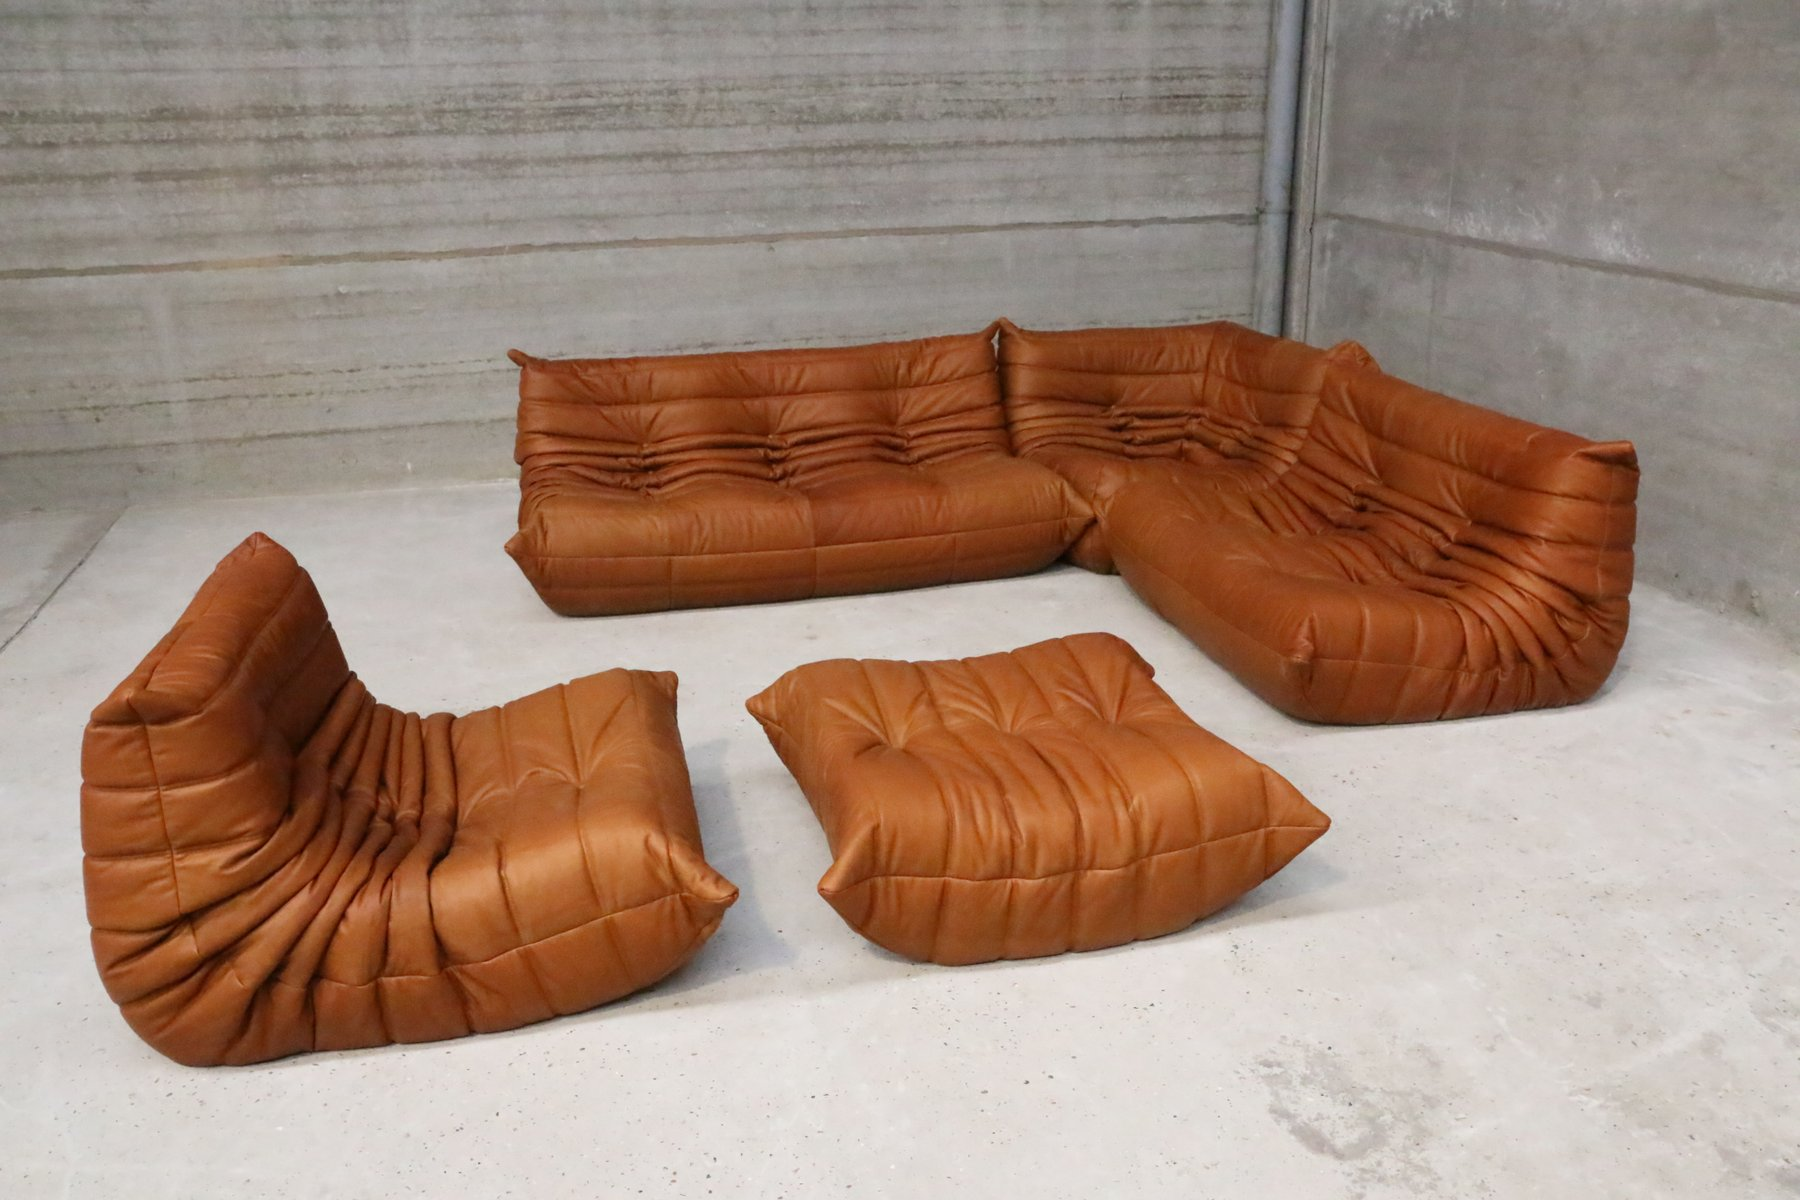 Vintage cognac leather togo set by michel ducaroy for ligne roset for sale at - Fauteuil togo ligne roset ...